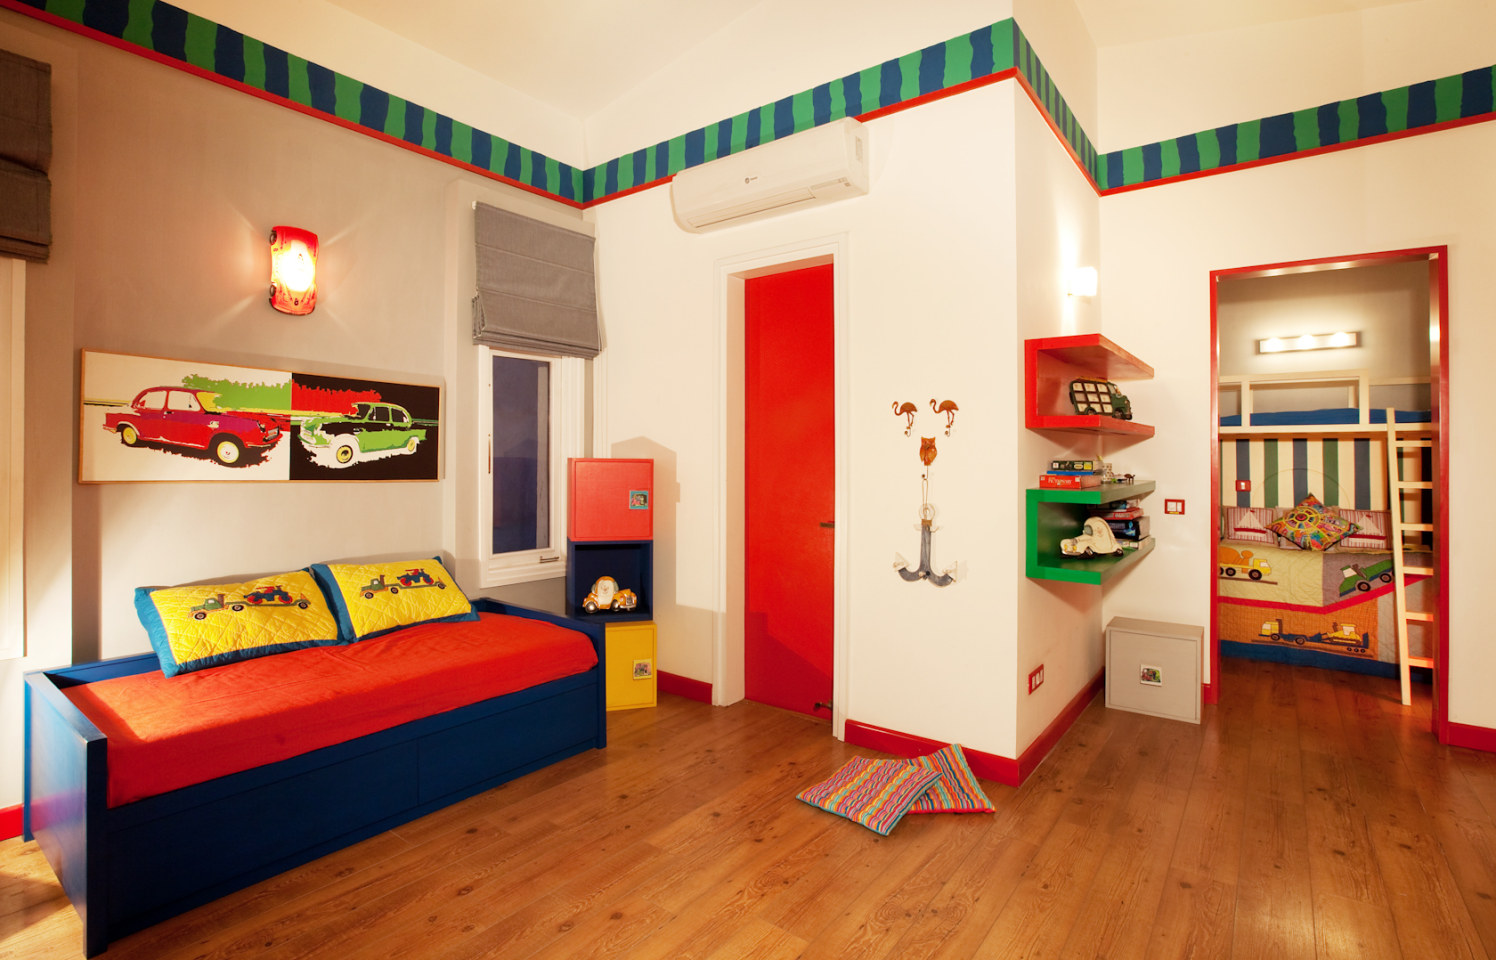 Kids Bedroom With Wooden Flooring And Small Cushioned bed by narayan moorthy Bedroom Modern | Interior Design Photos & Ideas